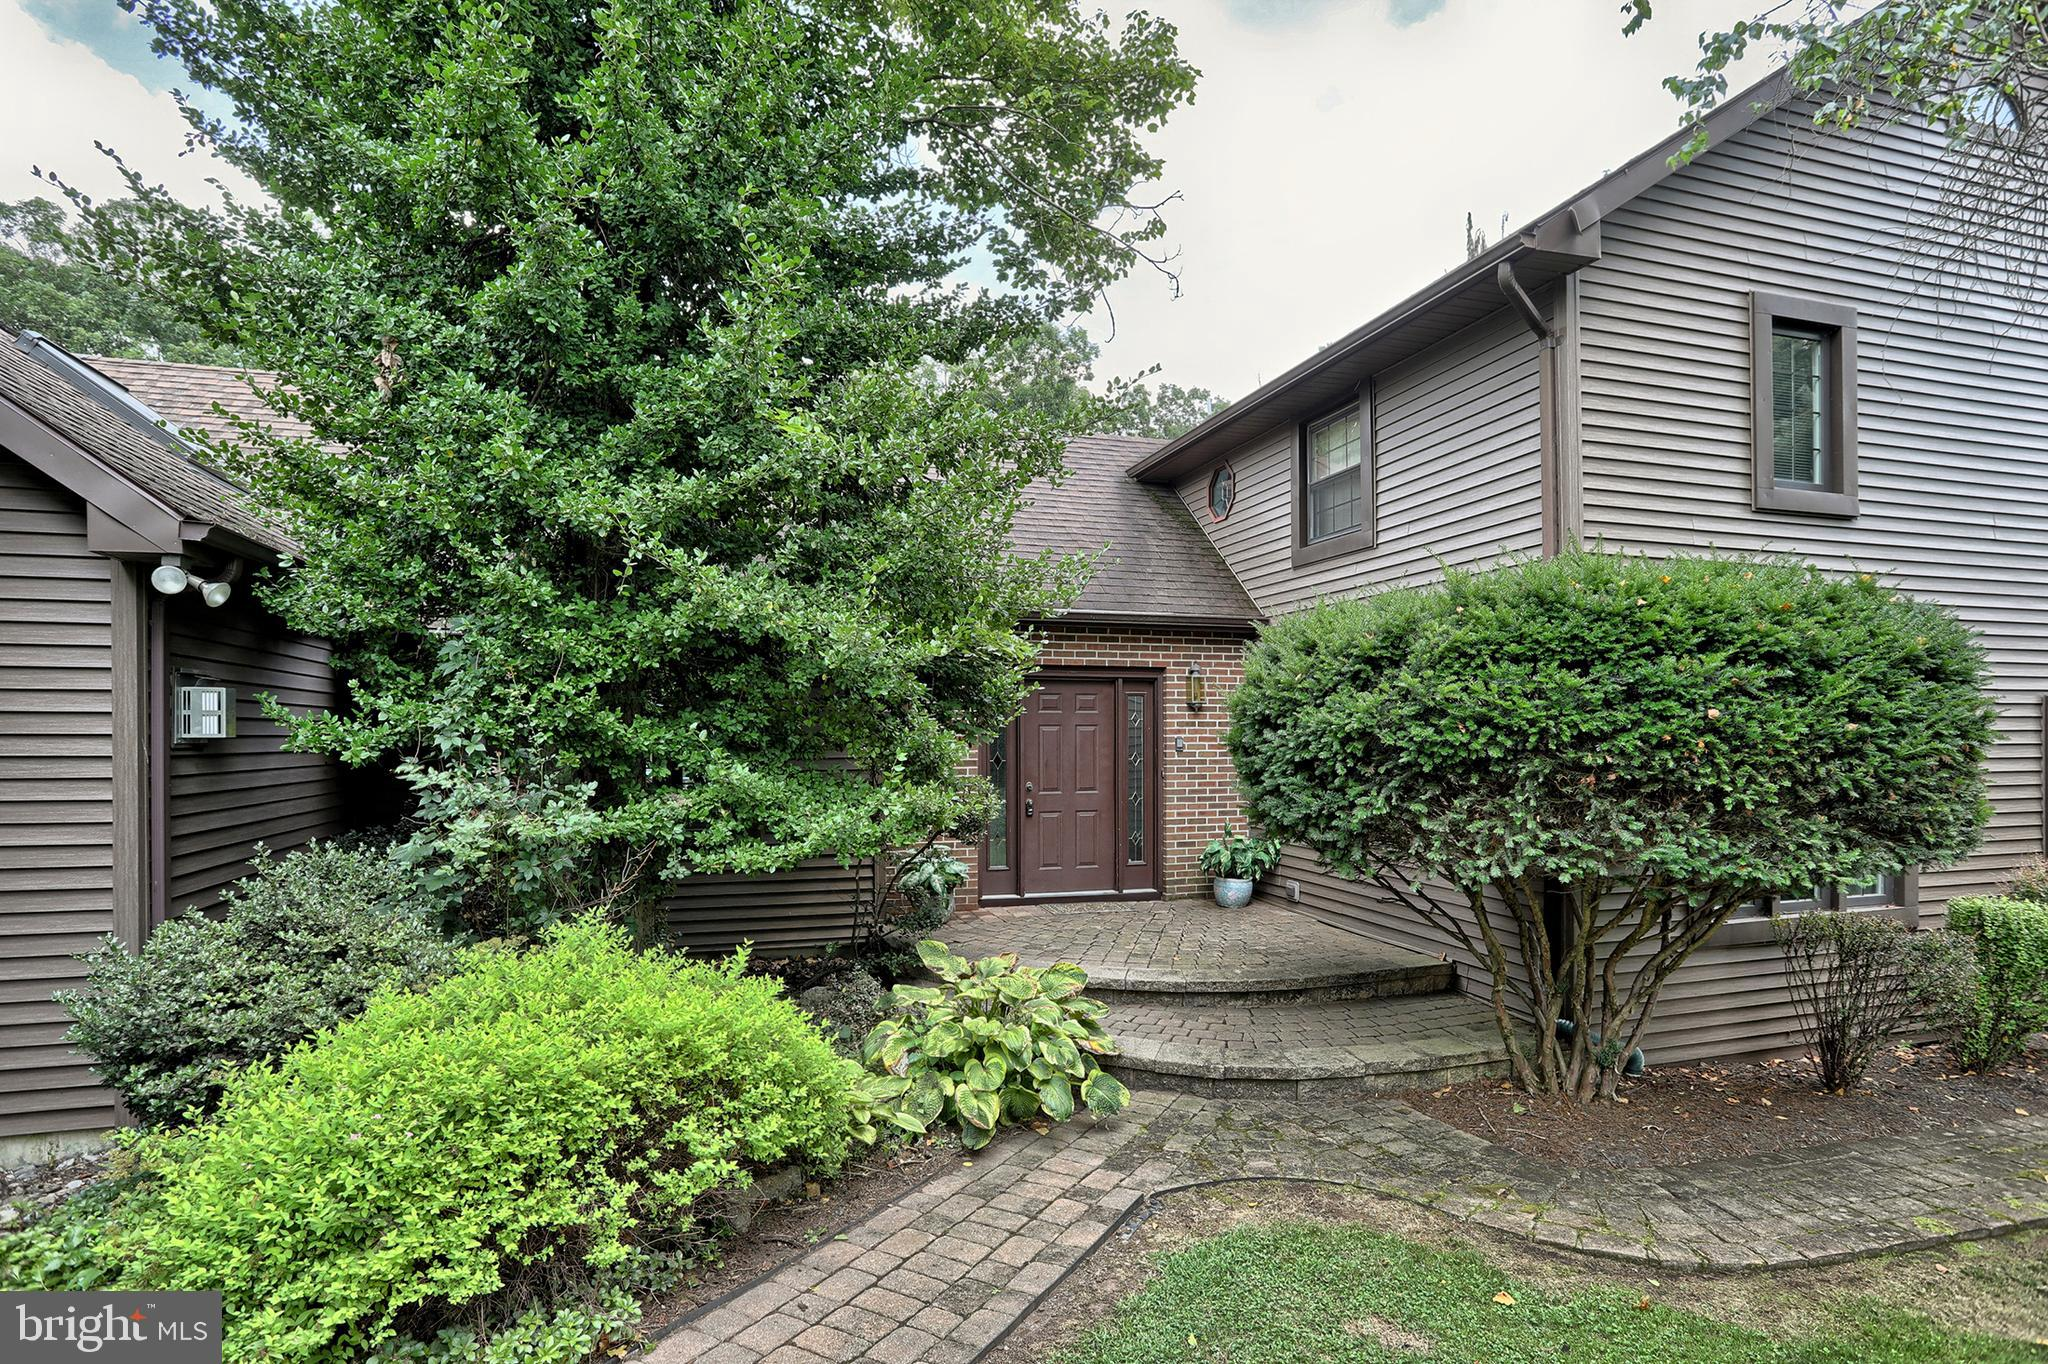 200 FOREST ROAD, POTTSVILLE, PA 17901